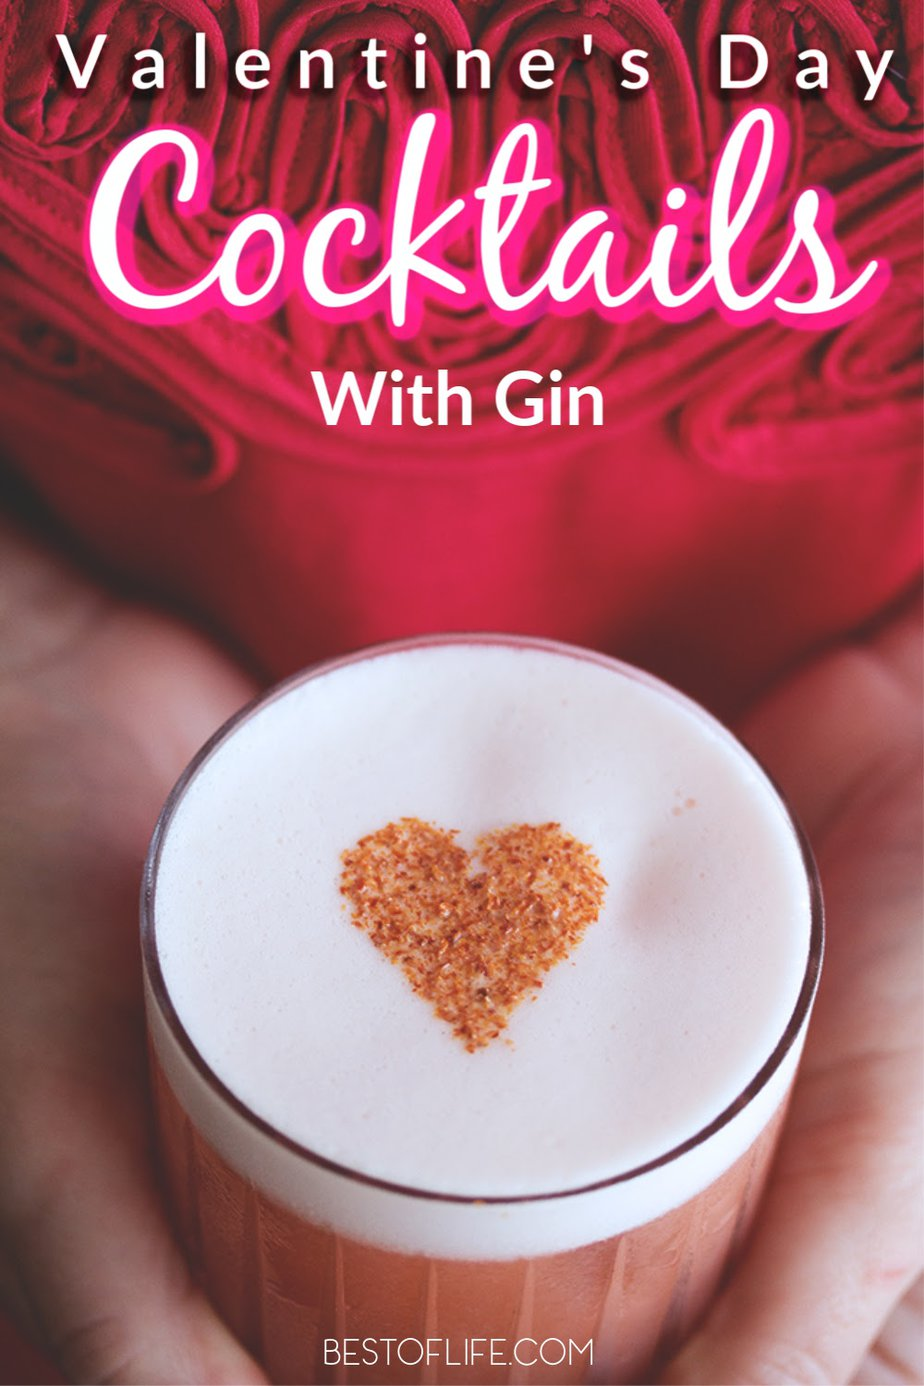 These delicious Valentine's Day cocktails with gin are the perfect way to set the mood for a night with your loved one. Better yet, they can be enjoyed all year long! Cheers! Romantic Cocktails | Cocktails for Couples | Gin Cocktails for Couples | Gin Drinks | Mixed Drink Recipes | Pink Cocktails | Red Cocktails for Valentine's Day #cocktails #recipe